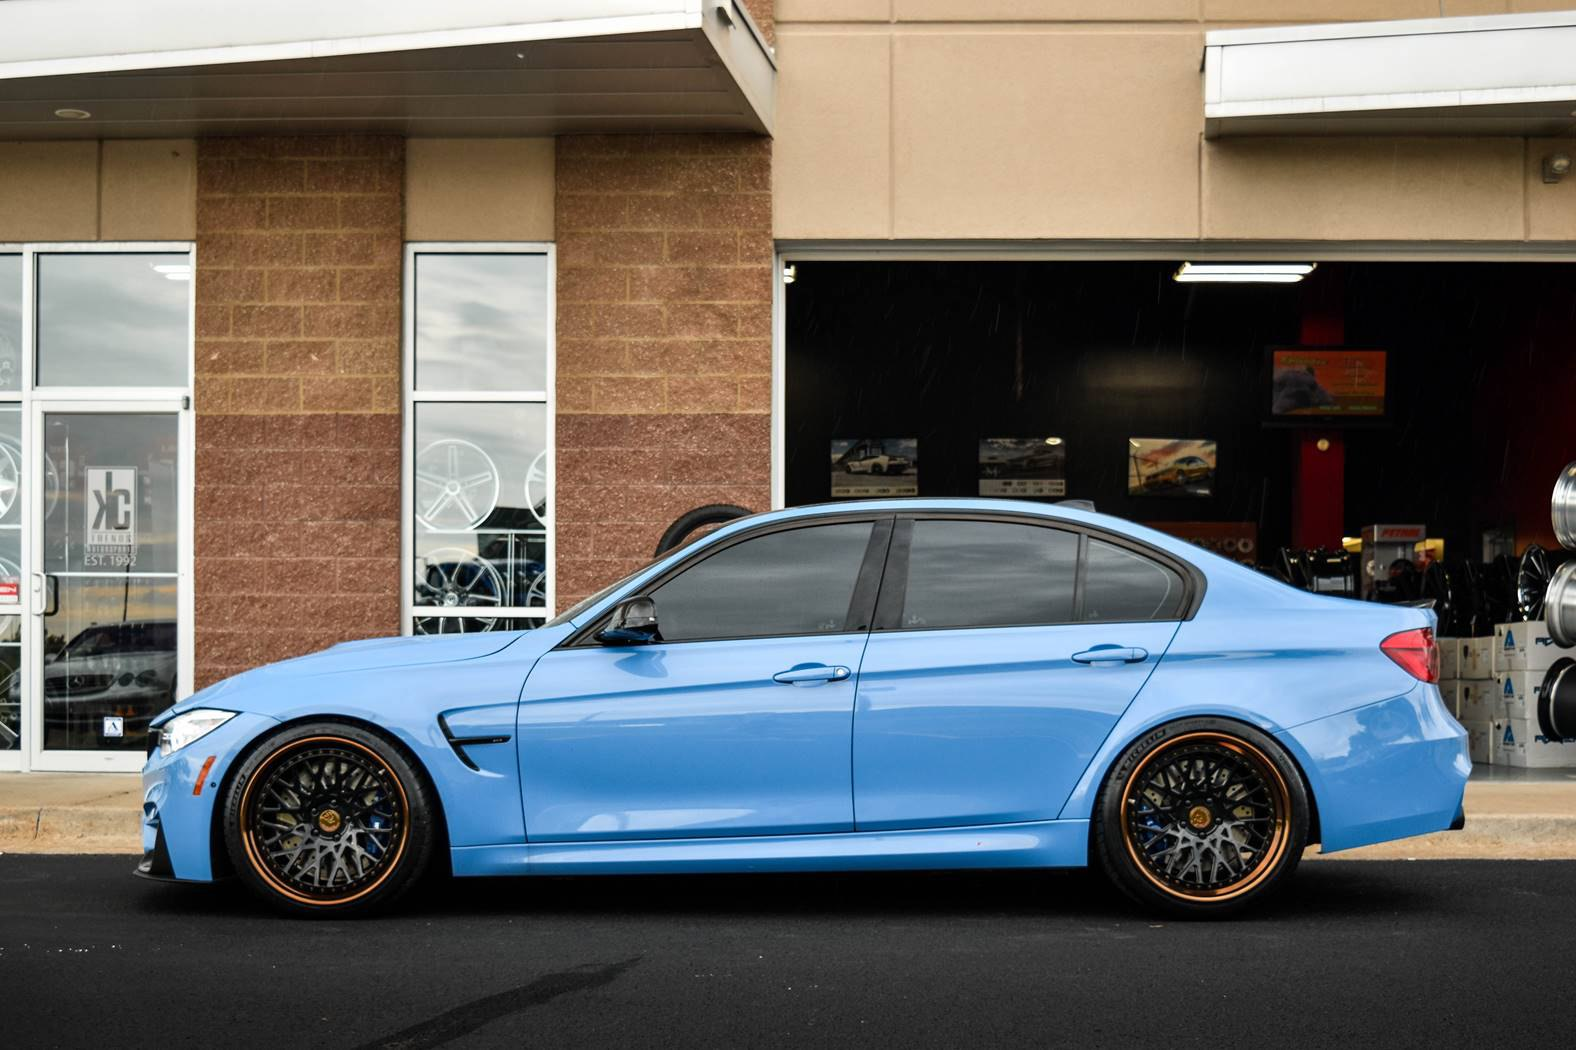 Sky Blue Bmw M3 F30 On Avant Garde Sport Wheels Carid Com Gallery